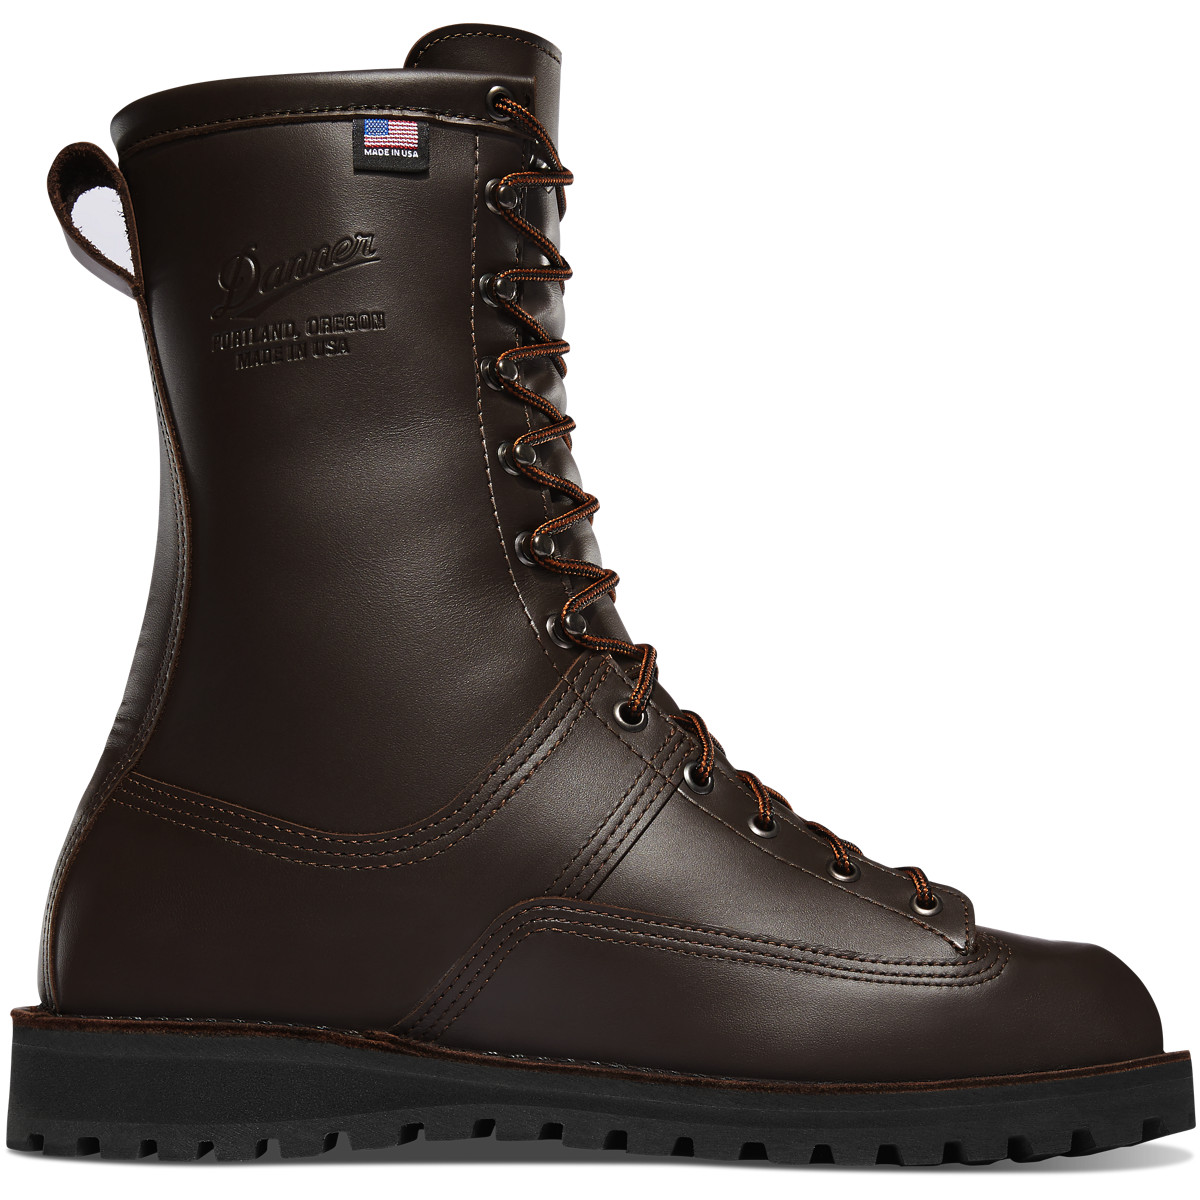 Danner Boots: AW13 Collection images